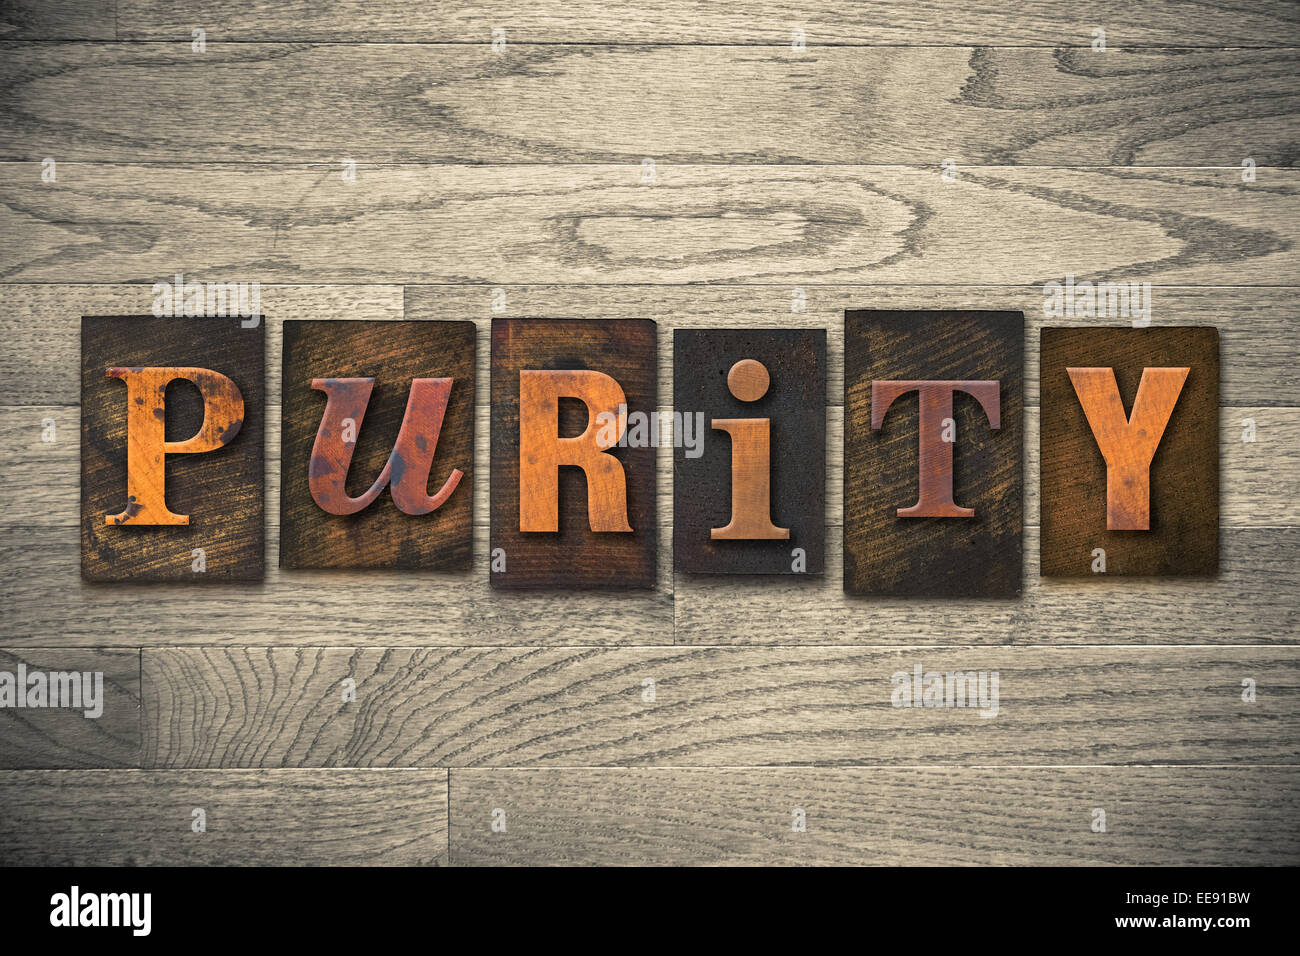 The word 'PURITY' written in wooden letterpress type. - Stock Image